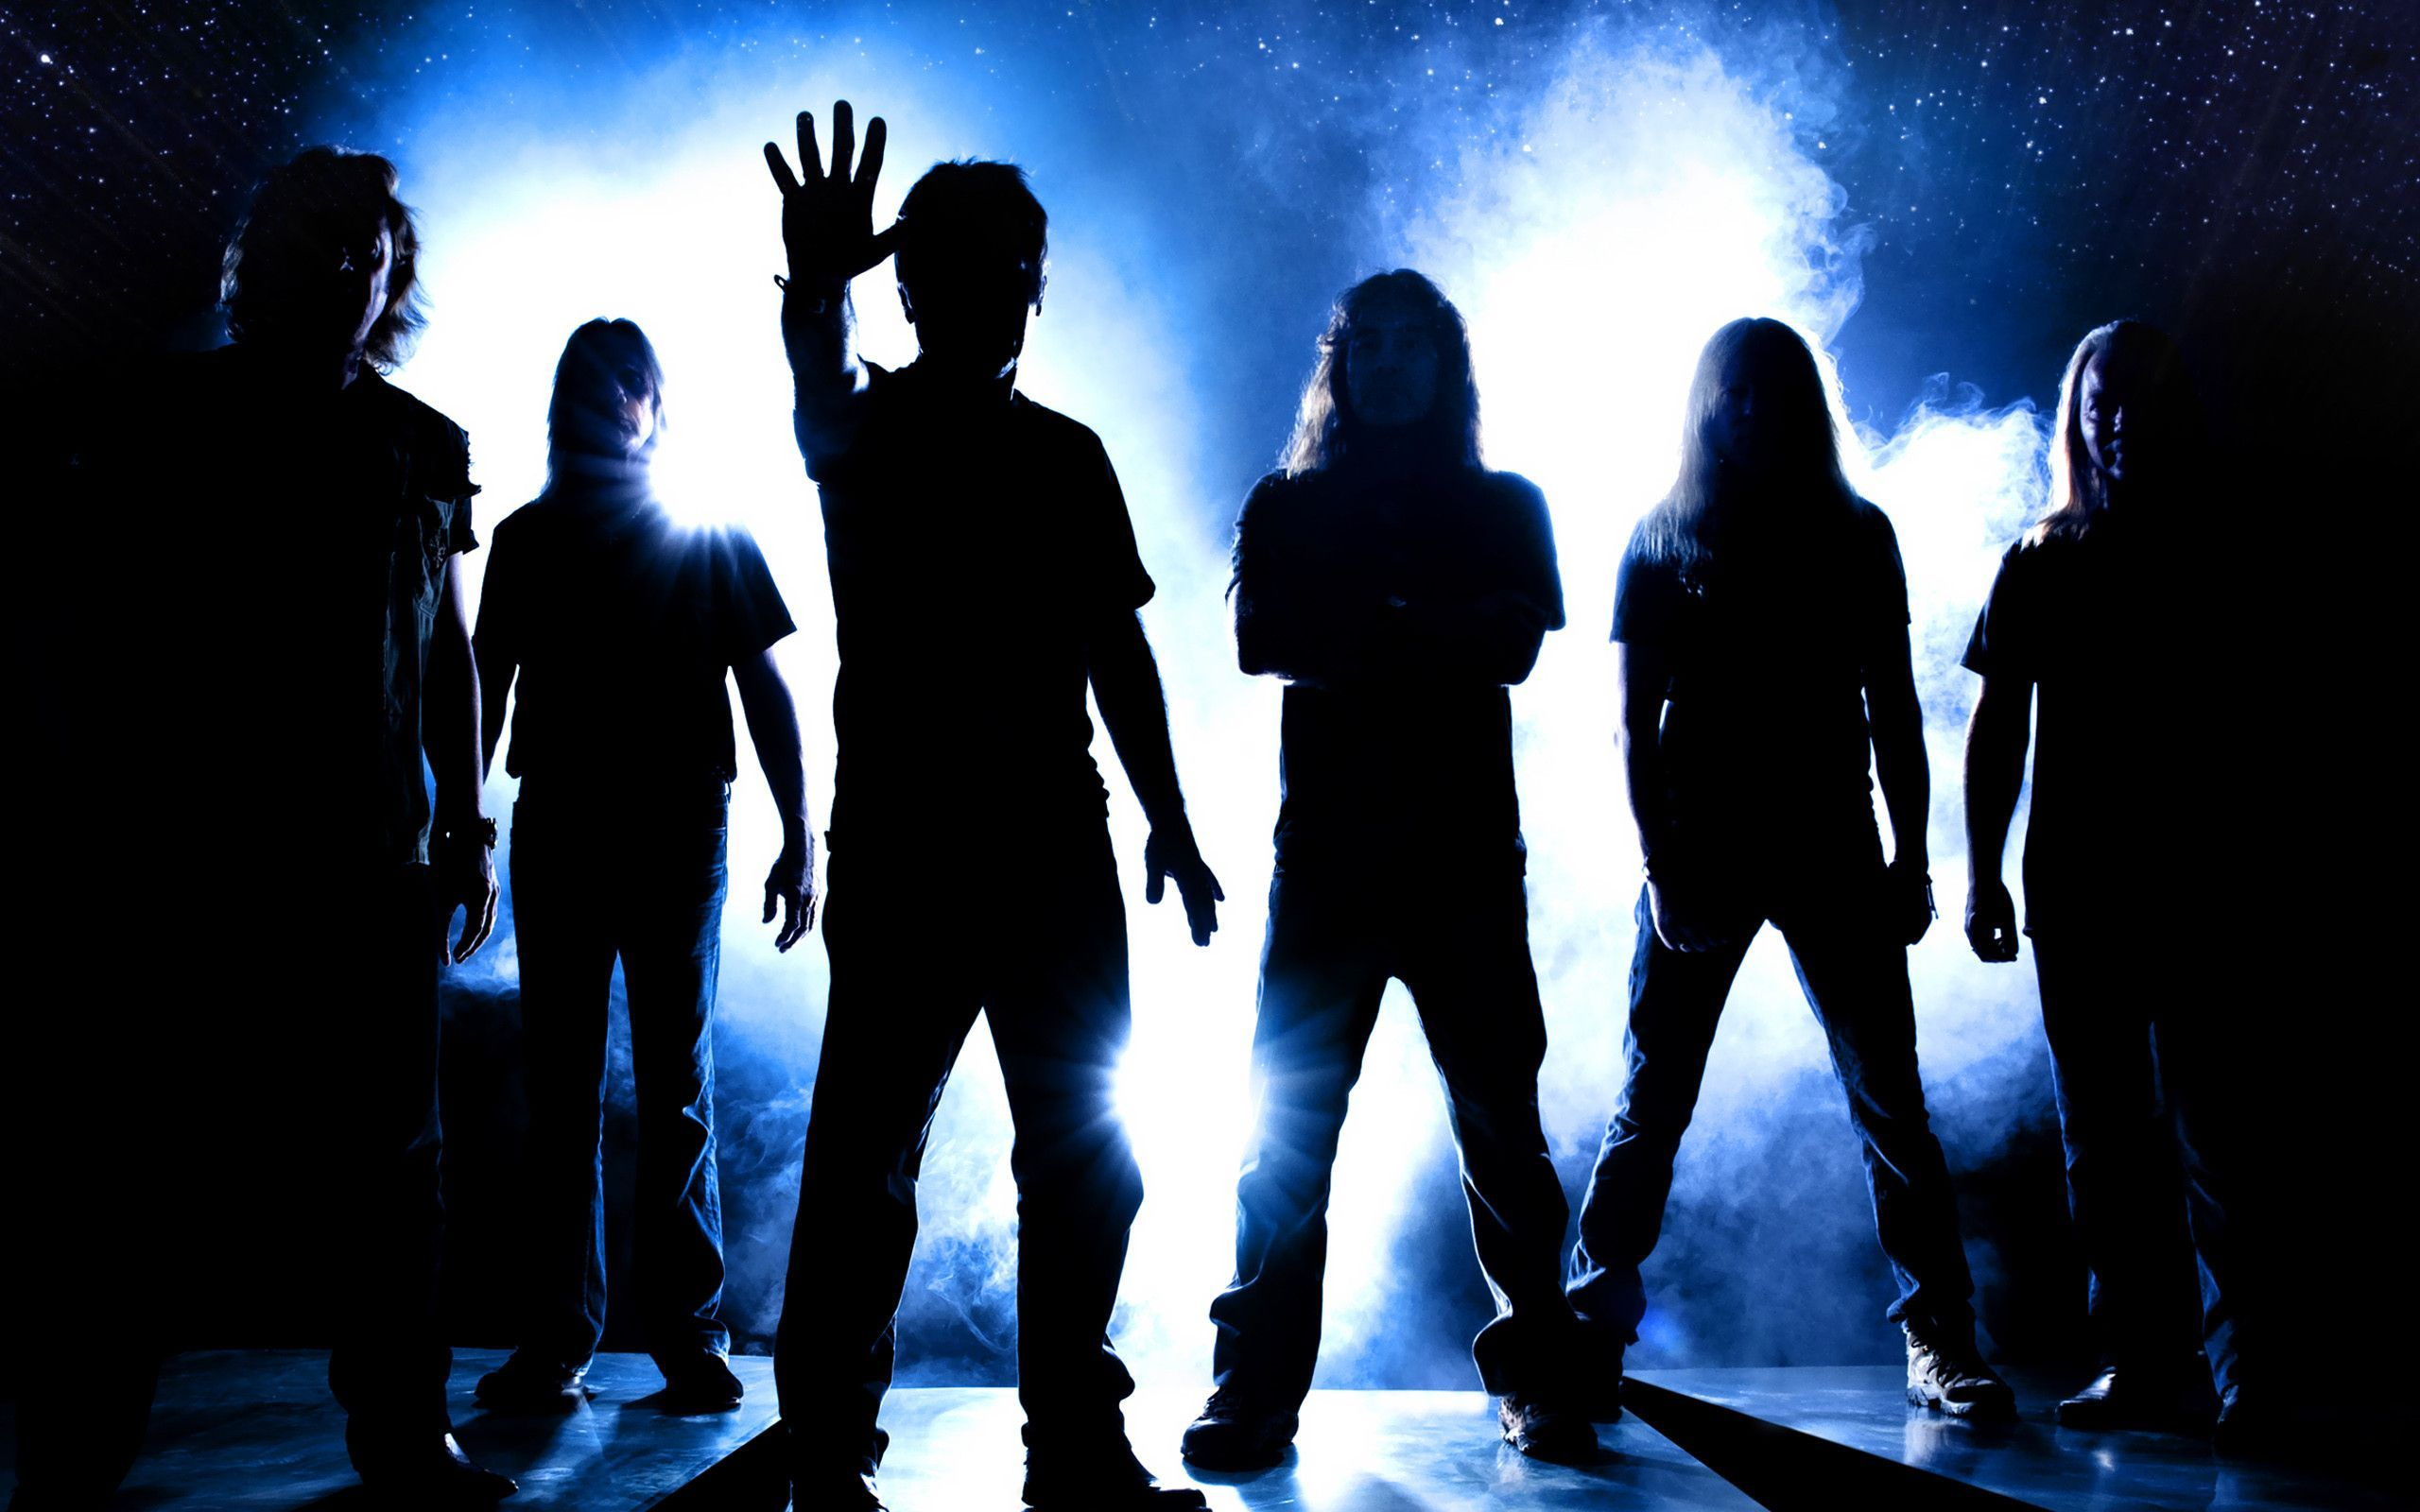 Metal Band Wallpapers - Wallpaper Cave